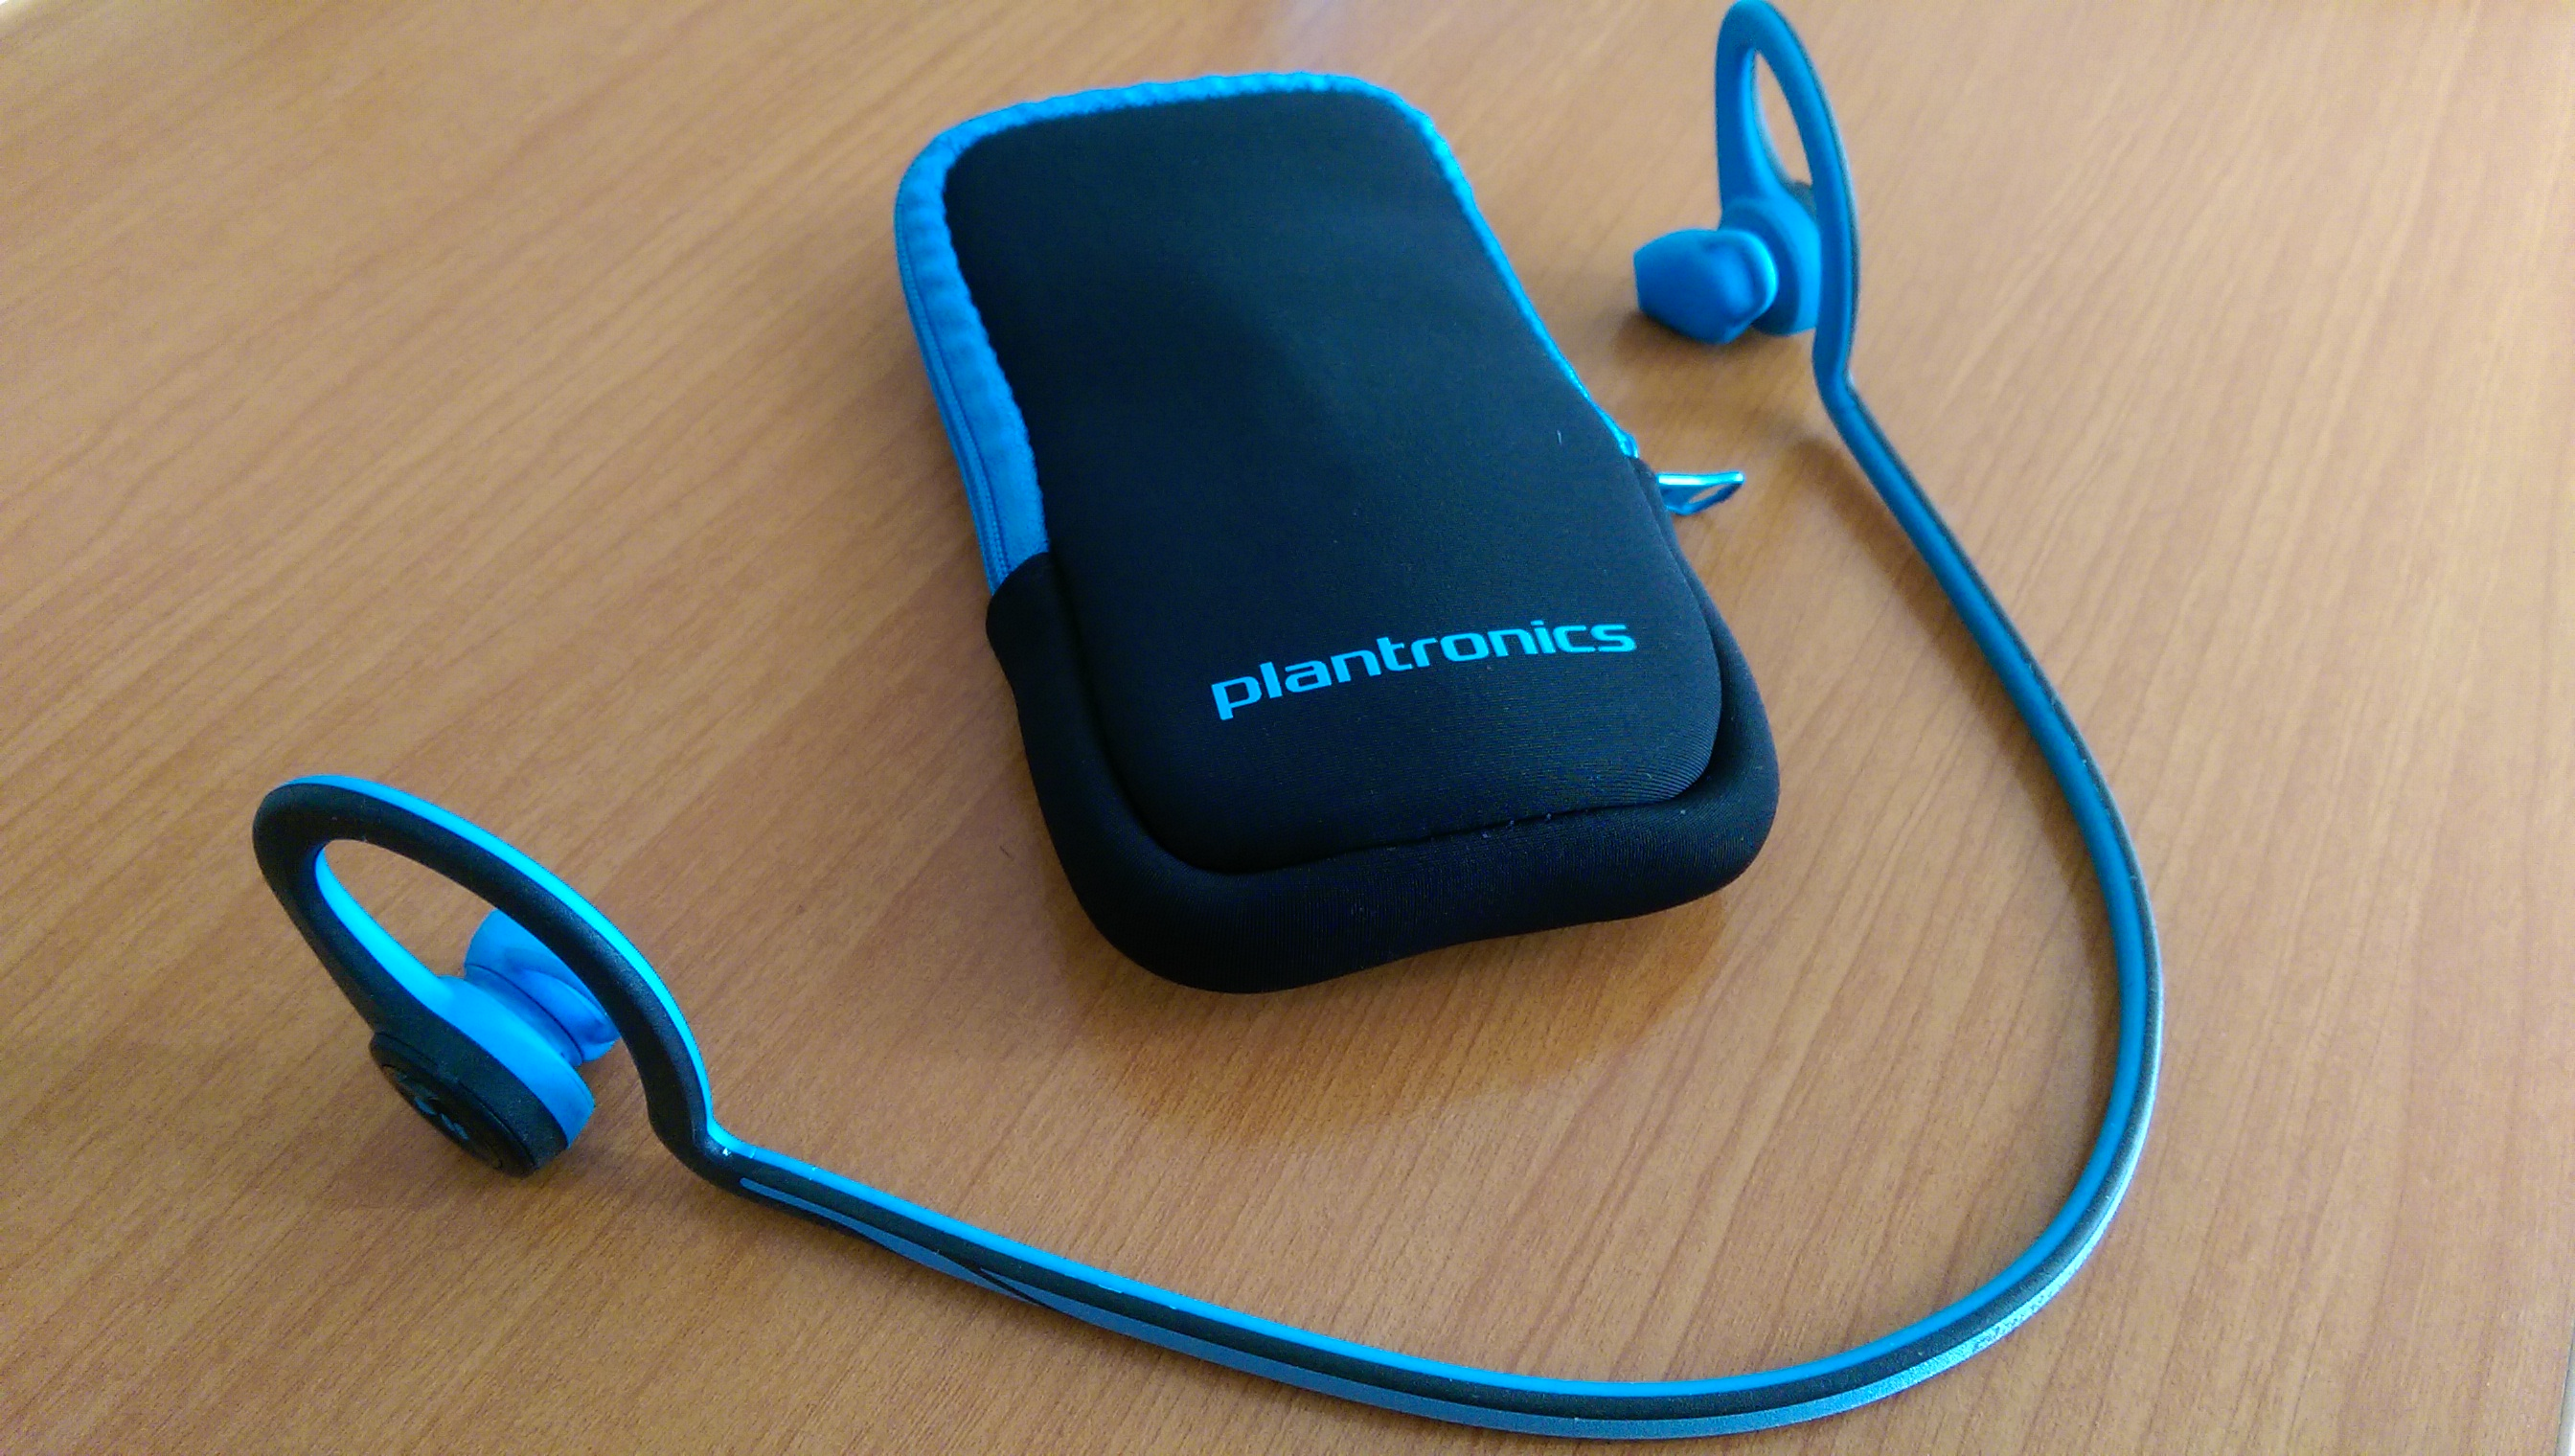 8db11f3bf99 Plantronics Backbeat FIT Review: Great For the Gym, Perfect For The ...